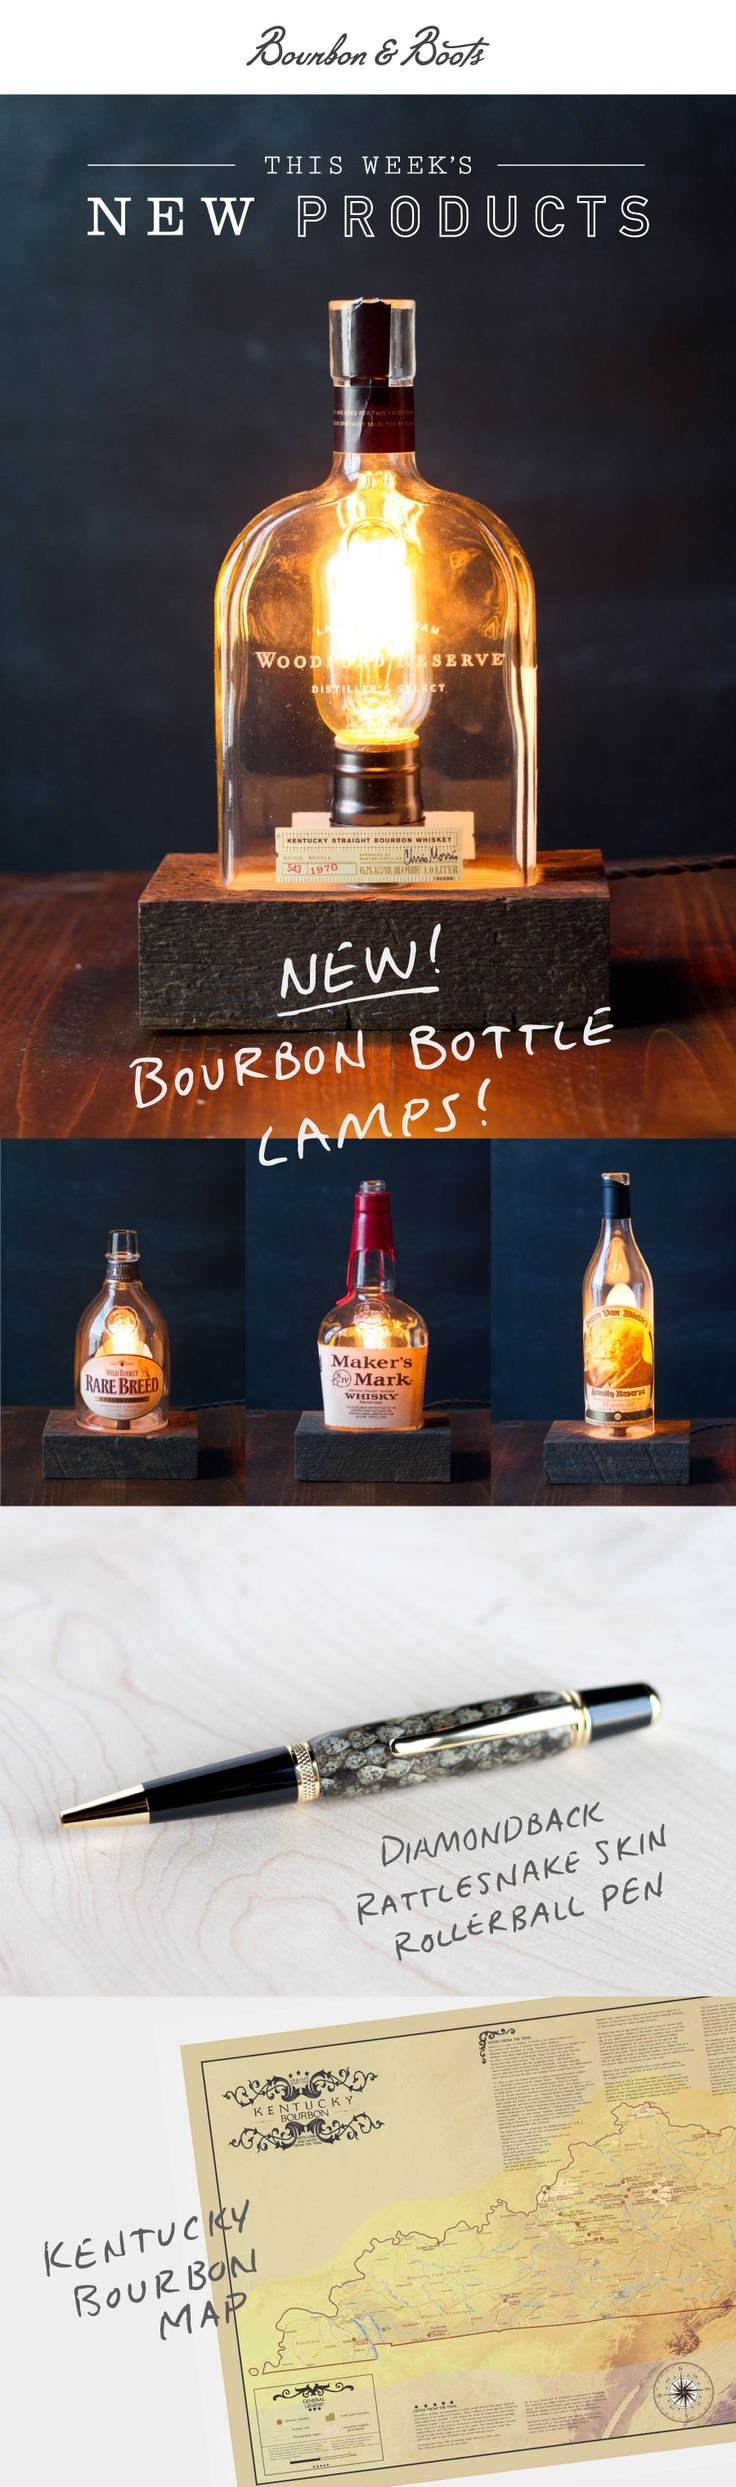 Check out these cool products that we launched this week. New Bourbon Bottle Lamps in 4 Brands, Rattlesnake Writing Pen, Kentucky Bourbon Trail Map and MORE.